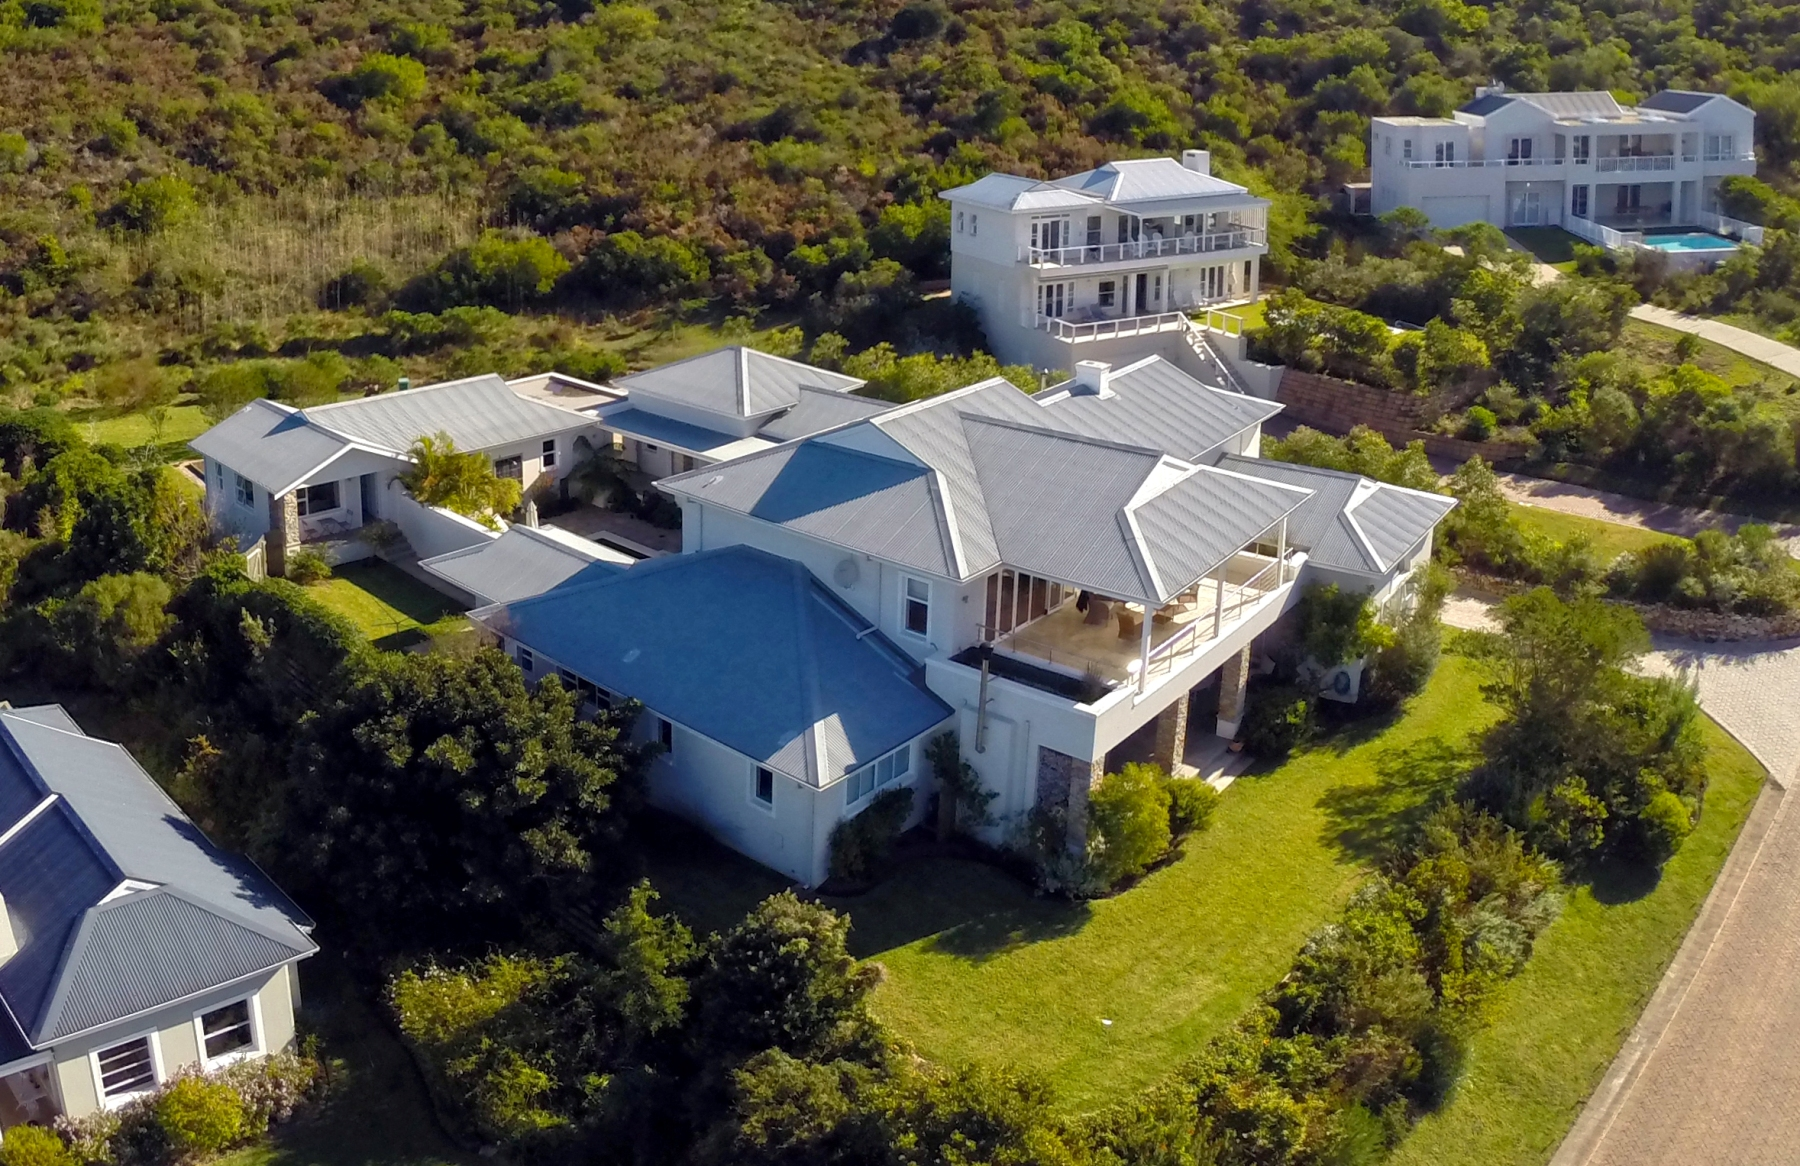 Single Family Home for Sale at Quiet Elegance in Gated Estate Plettenberg Bay, Western Cape, 6600 South Africa